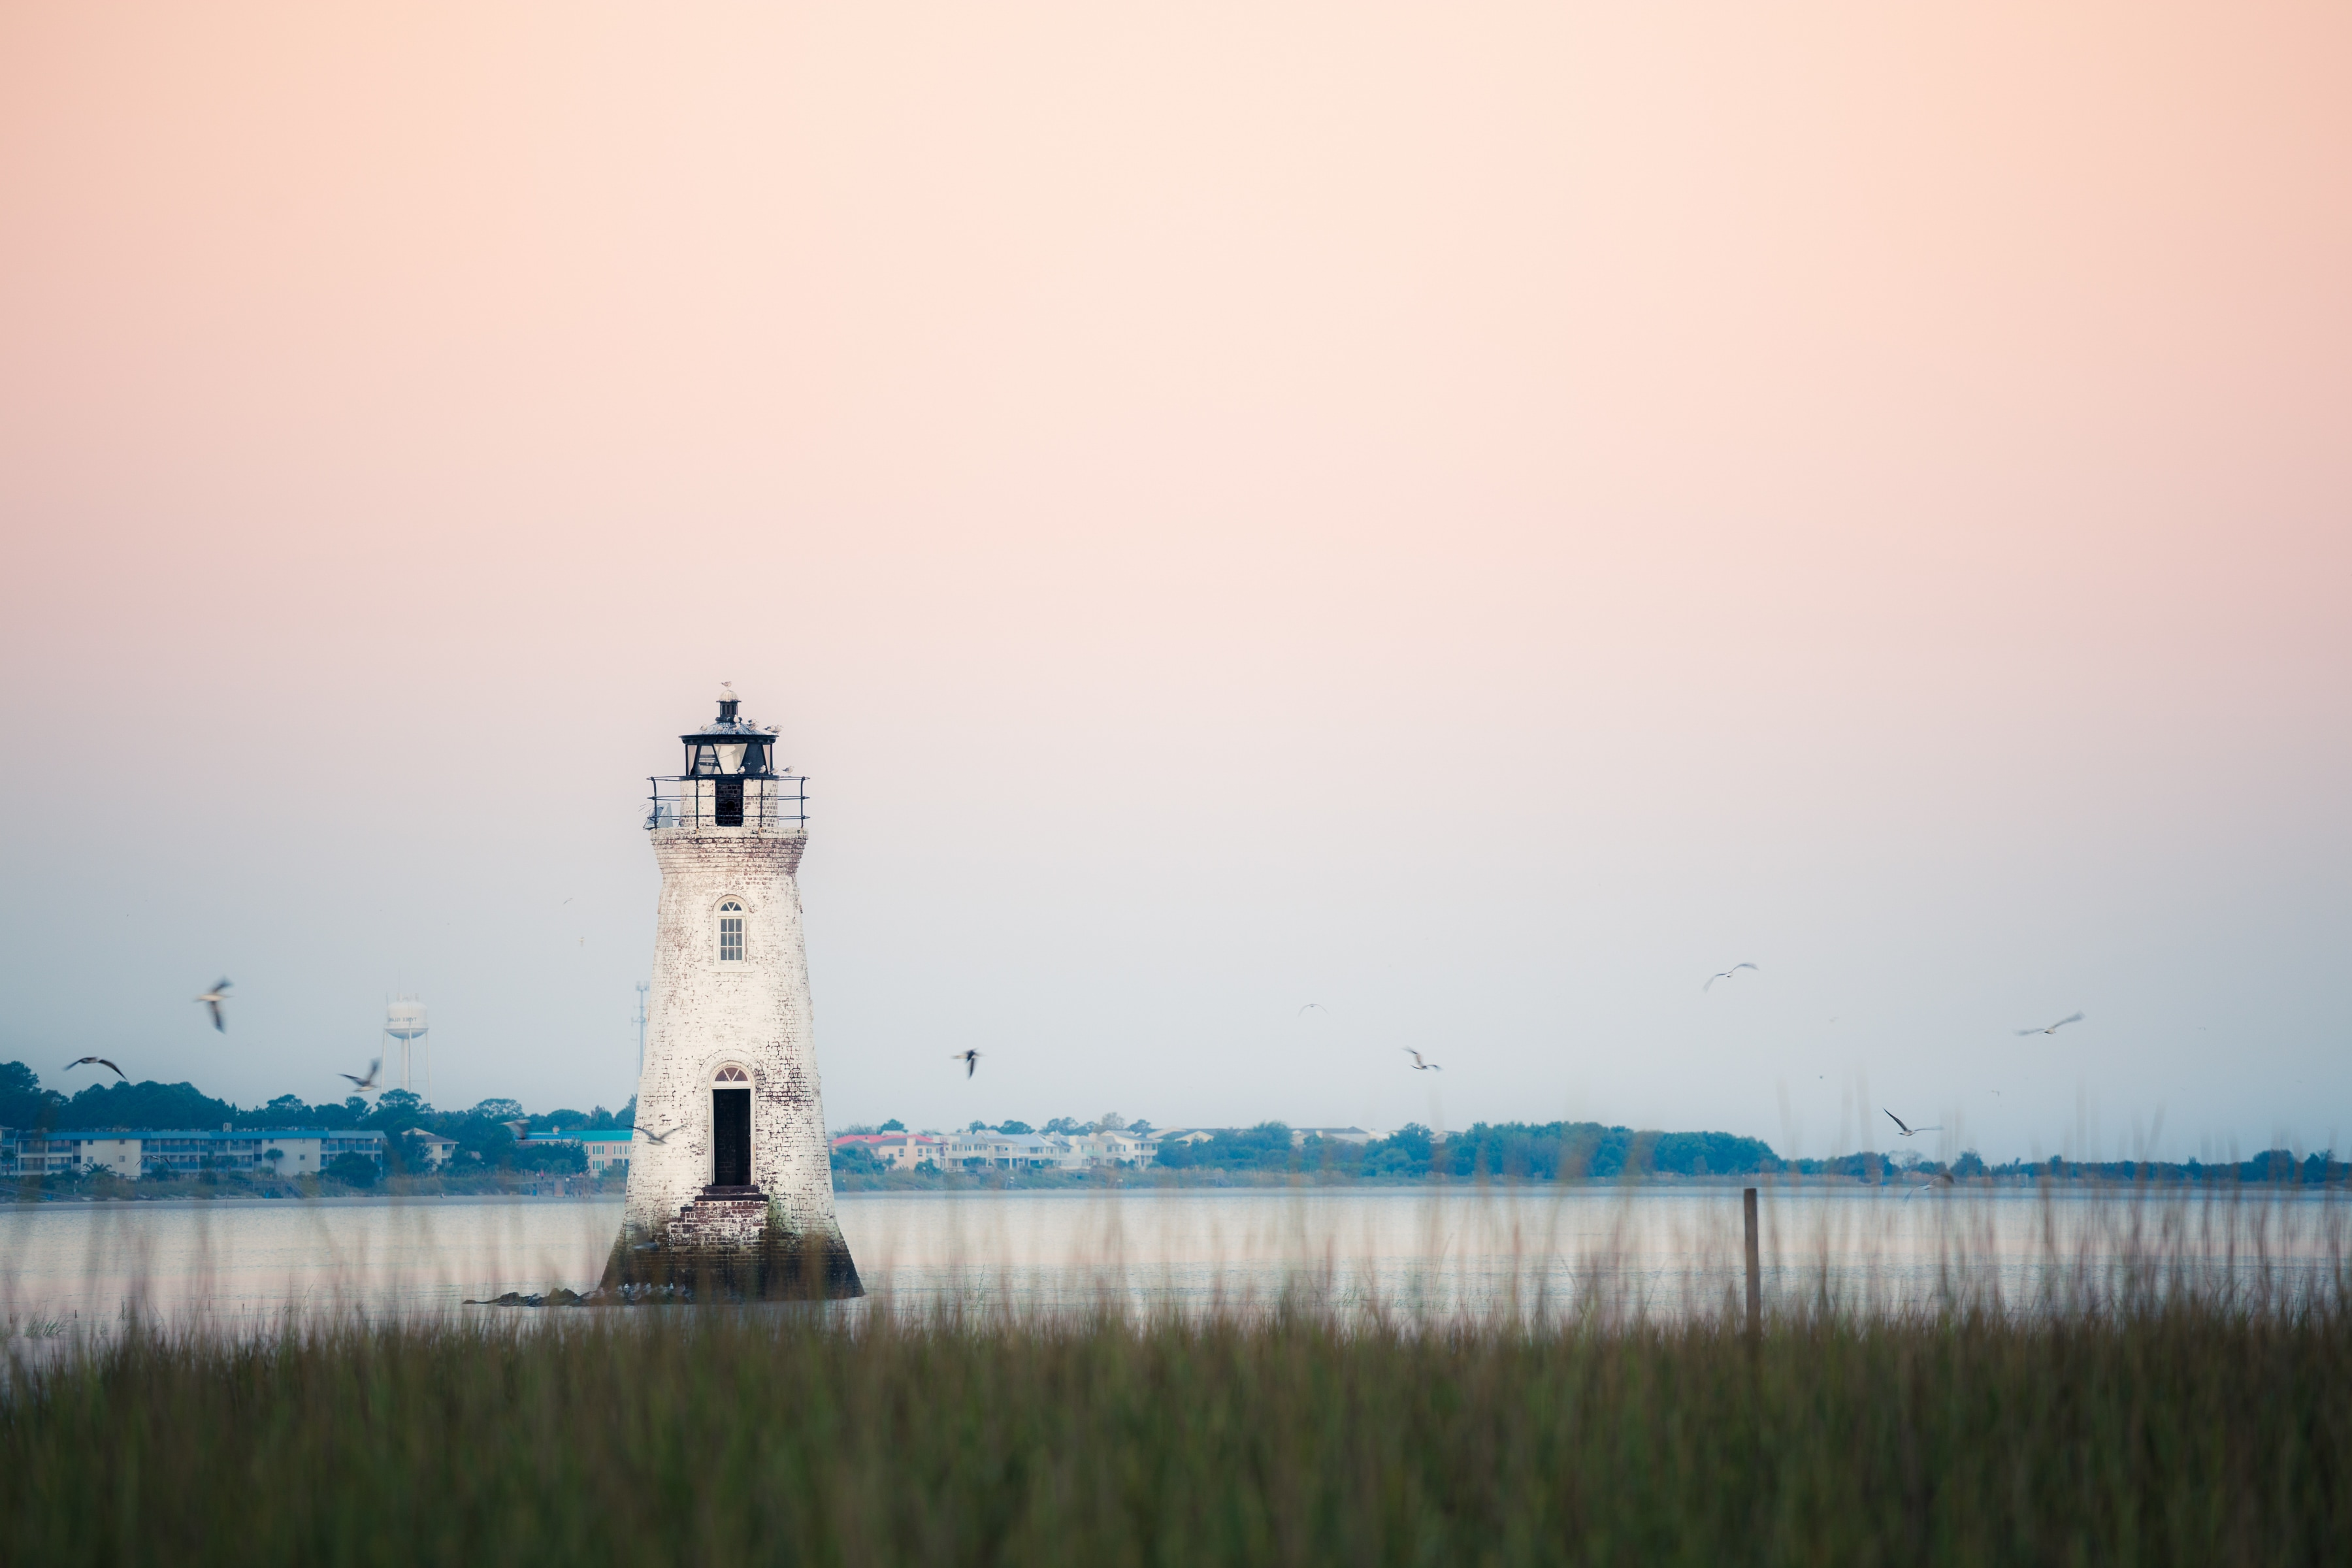 The history buff in your group will love visiting Cockspur Island Lighthouse.